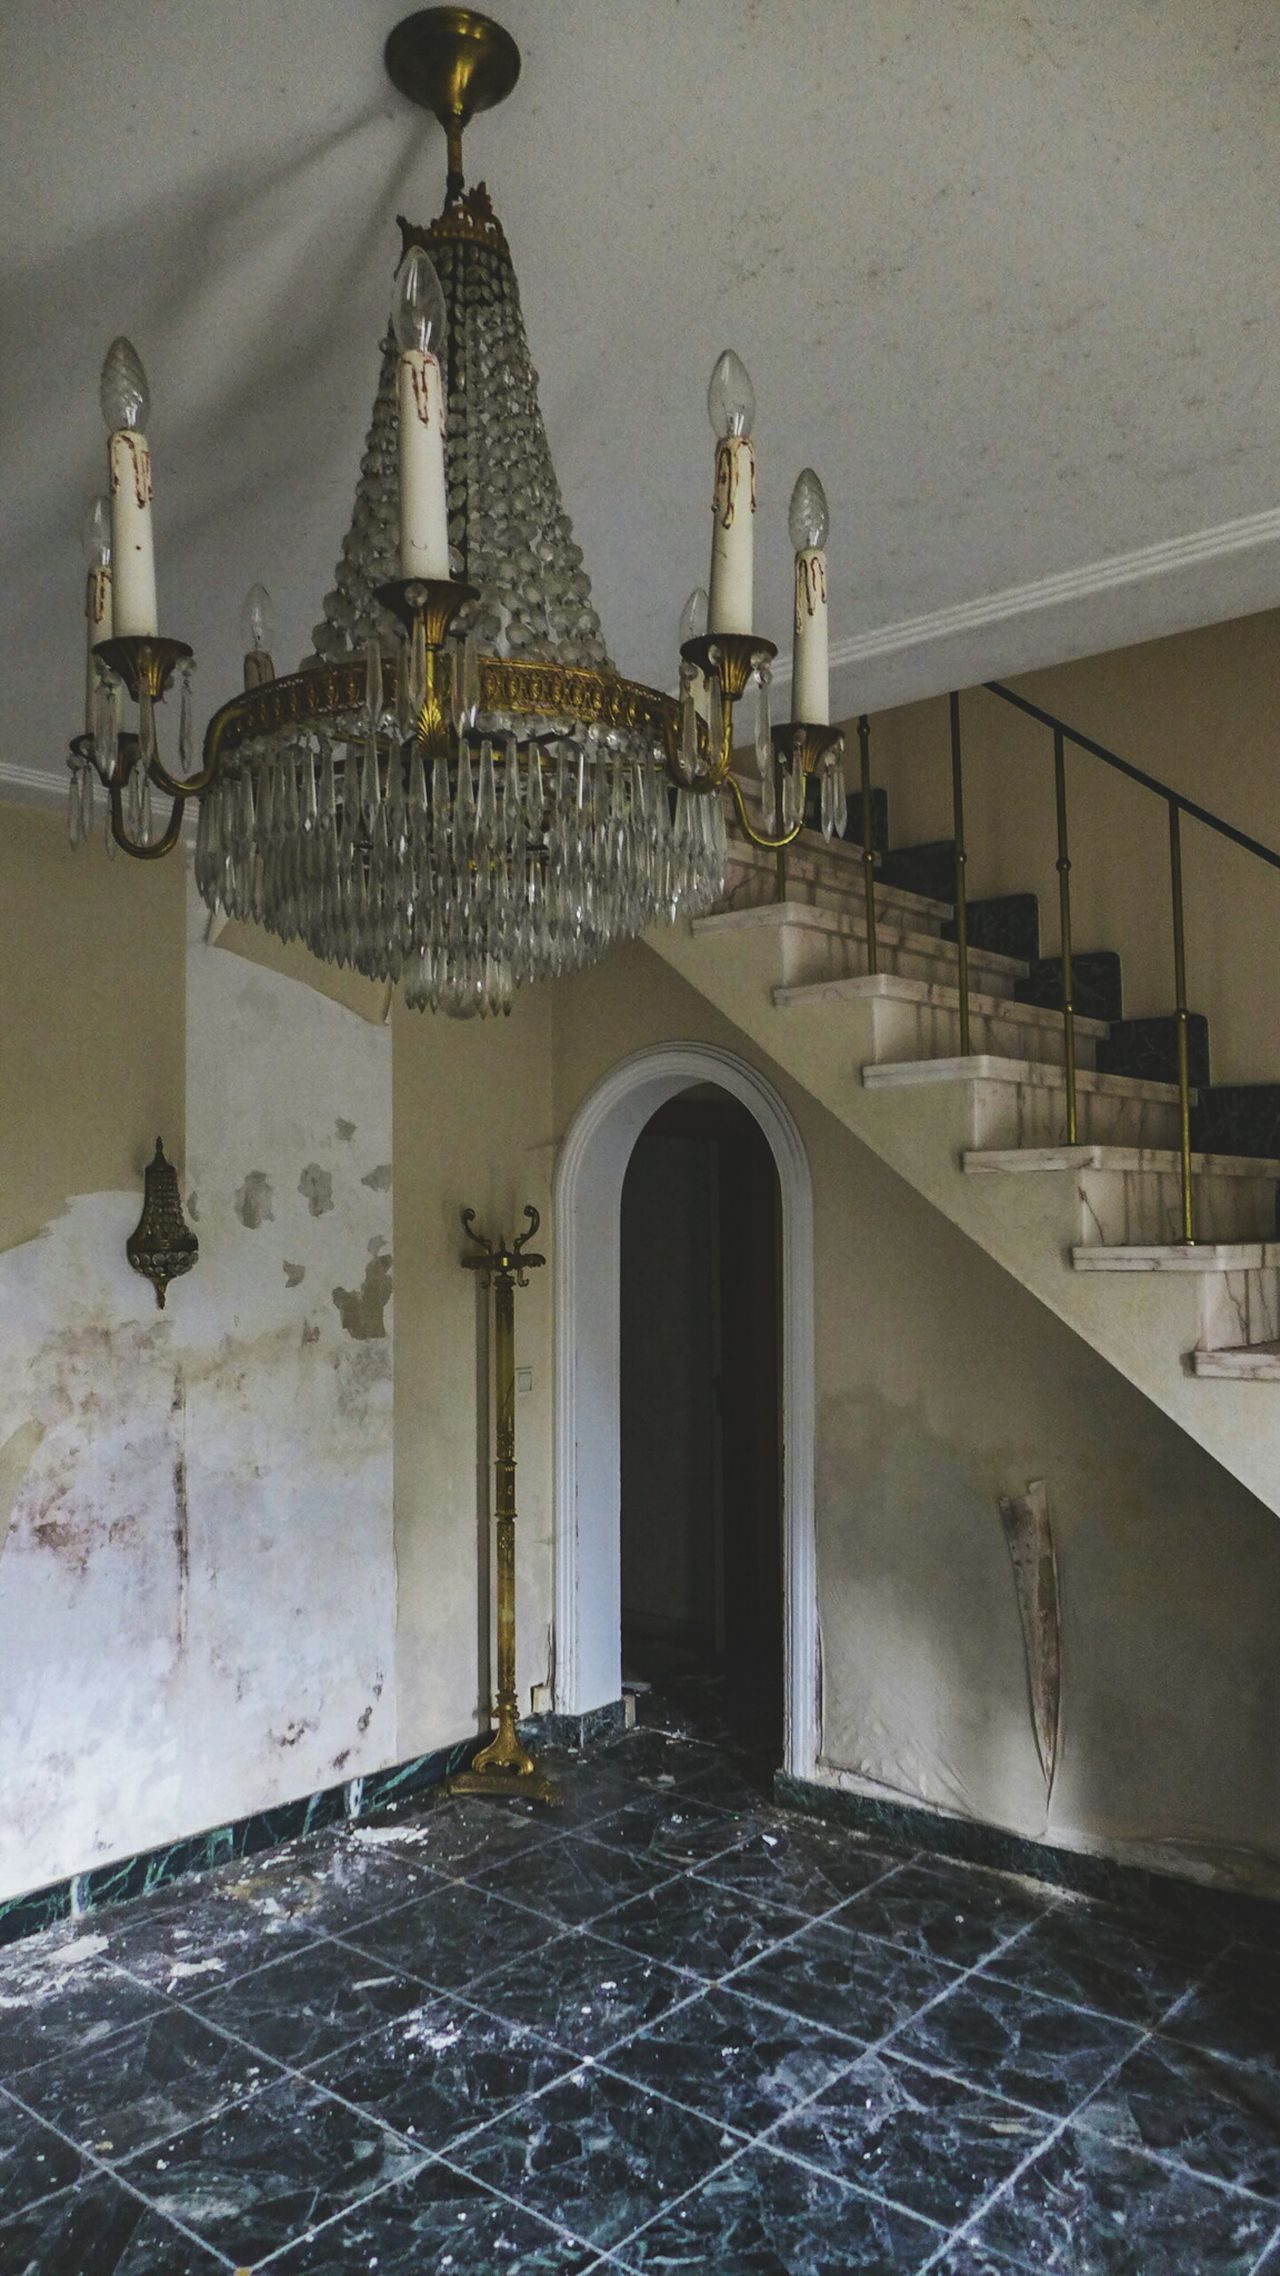 History Travel Destinations Architecture No People Day Abandoned Places Decay Urbexexplorer Urbexworld Urbexphotography Creativity Photography Abandoned Old Photograph Urbex Discovering Traveling Live For The Story Abandonedporn Home Interior Luxury Chandelier Chandelier Crystals Indoors